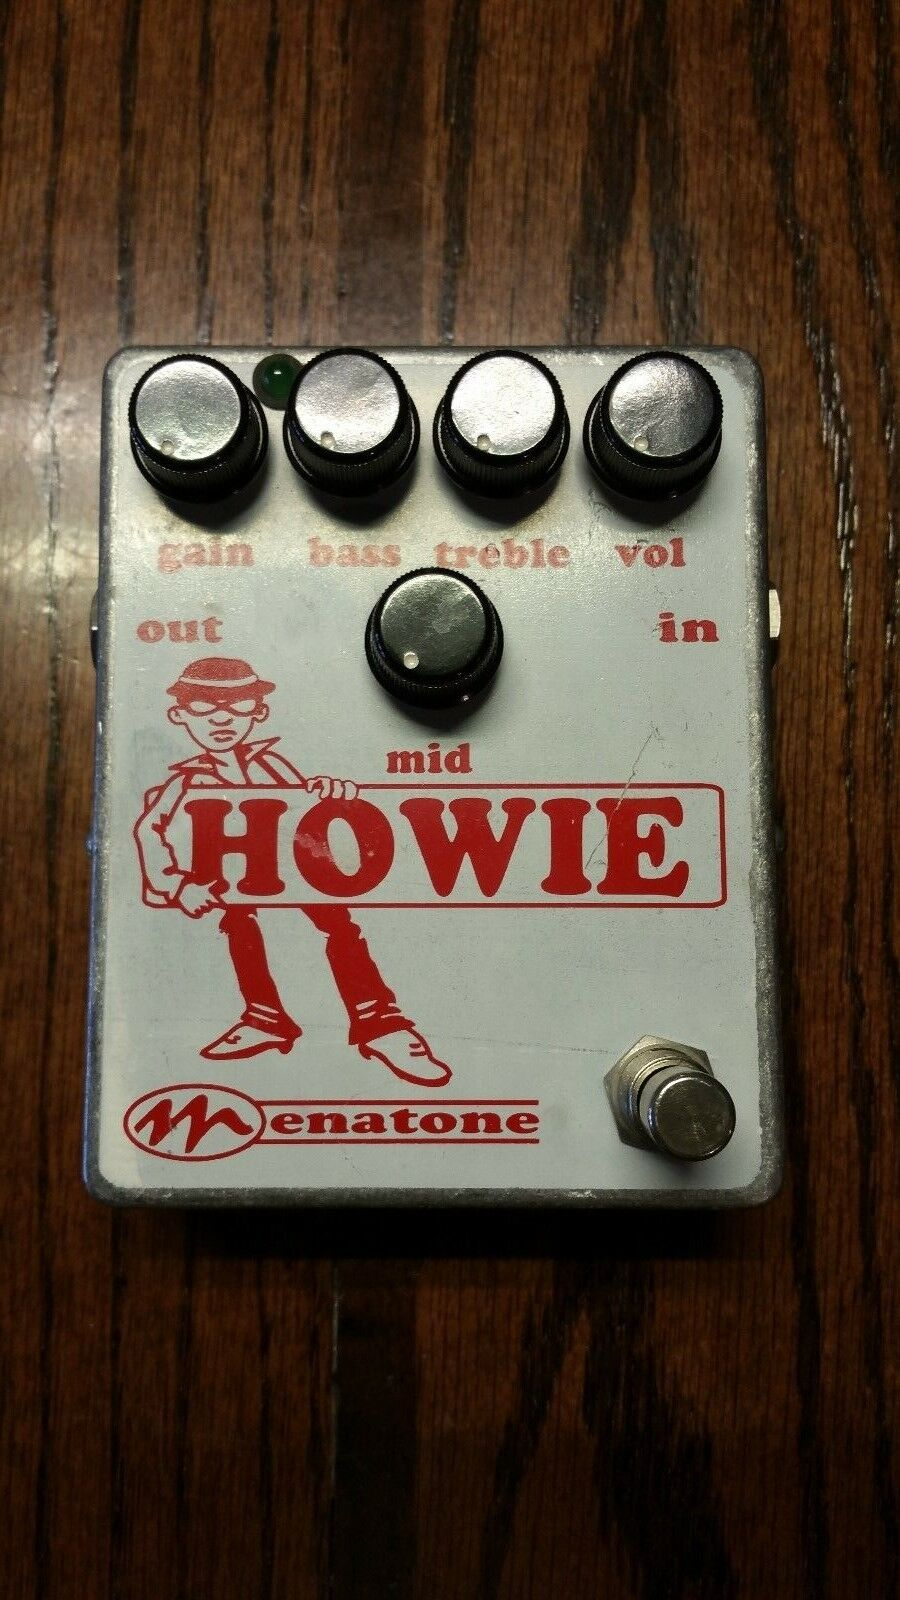 Menatone Howie Guitar Overdrive Distortion Pedal   5 Knob 1st Edition